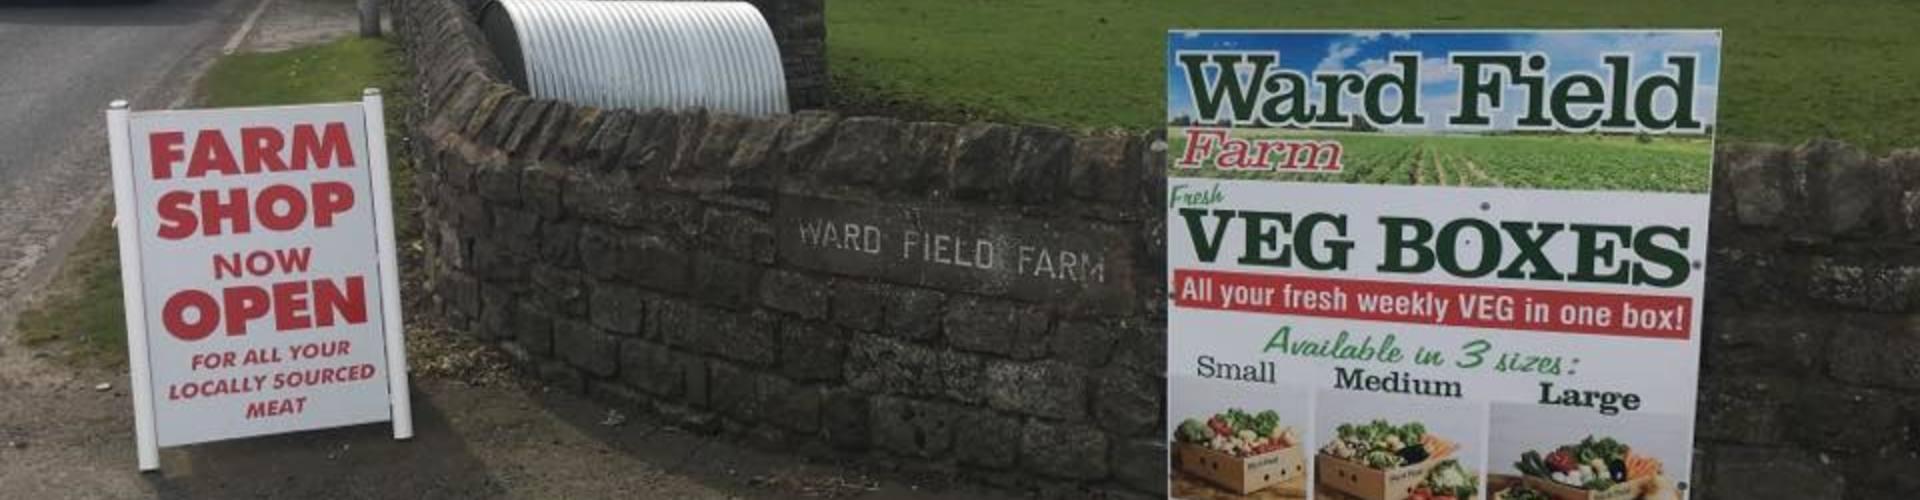 Ward field farm halal uk